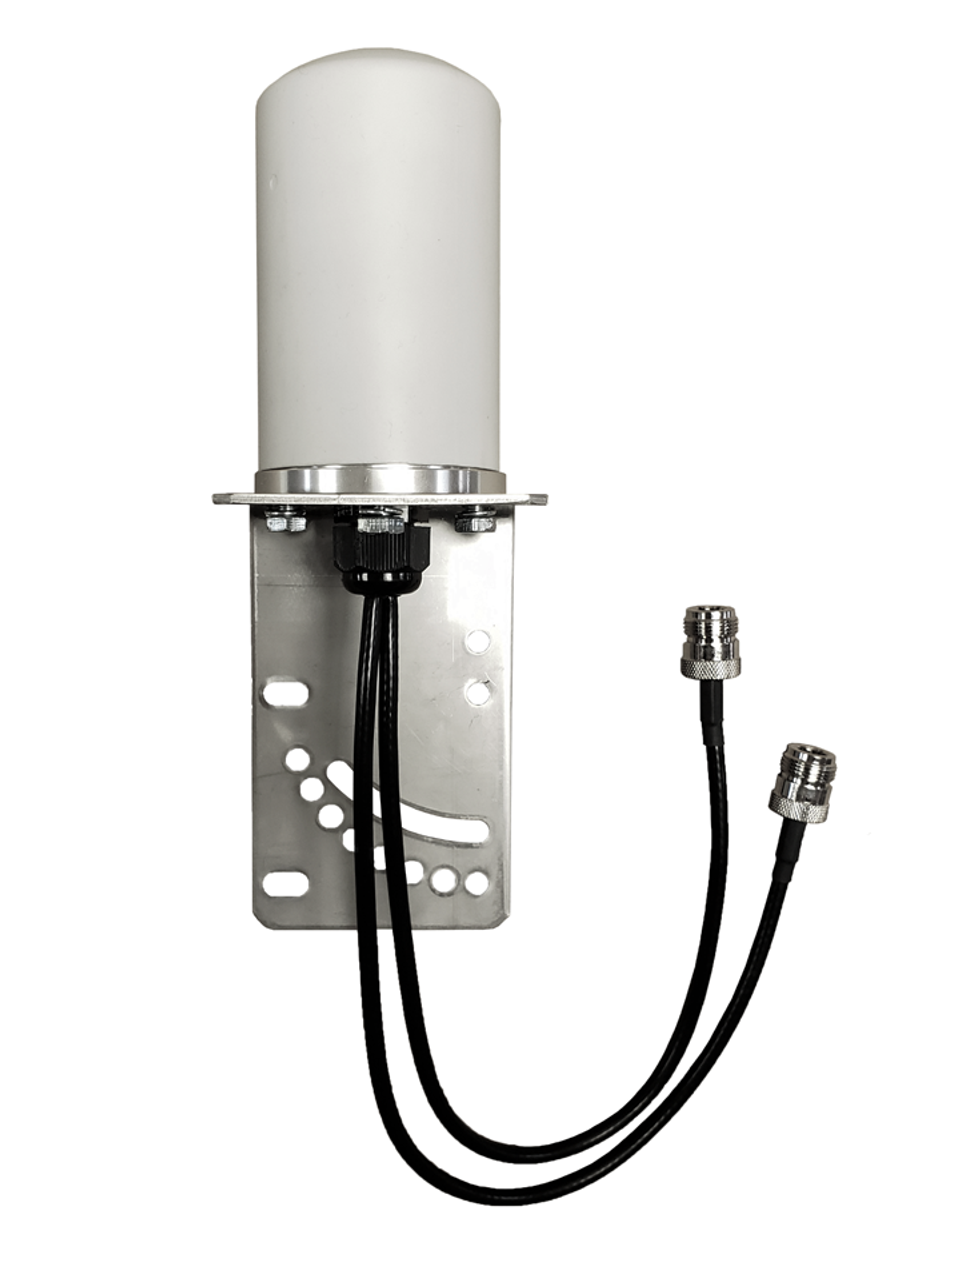 7dBi M17 Omni Directional MIMO Cellular 4G 5G LTE AWS XLTE M2M IoT Antenna w/1FT N-Female Coax Cables. w/ Cable Length Options